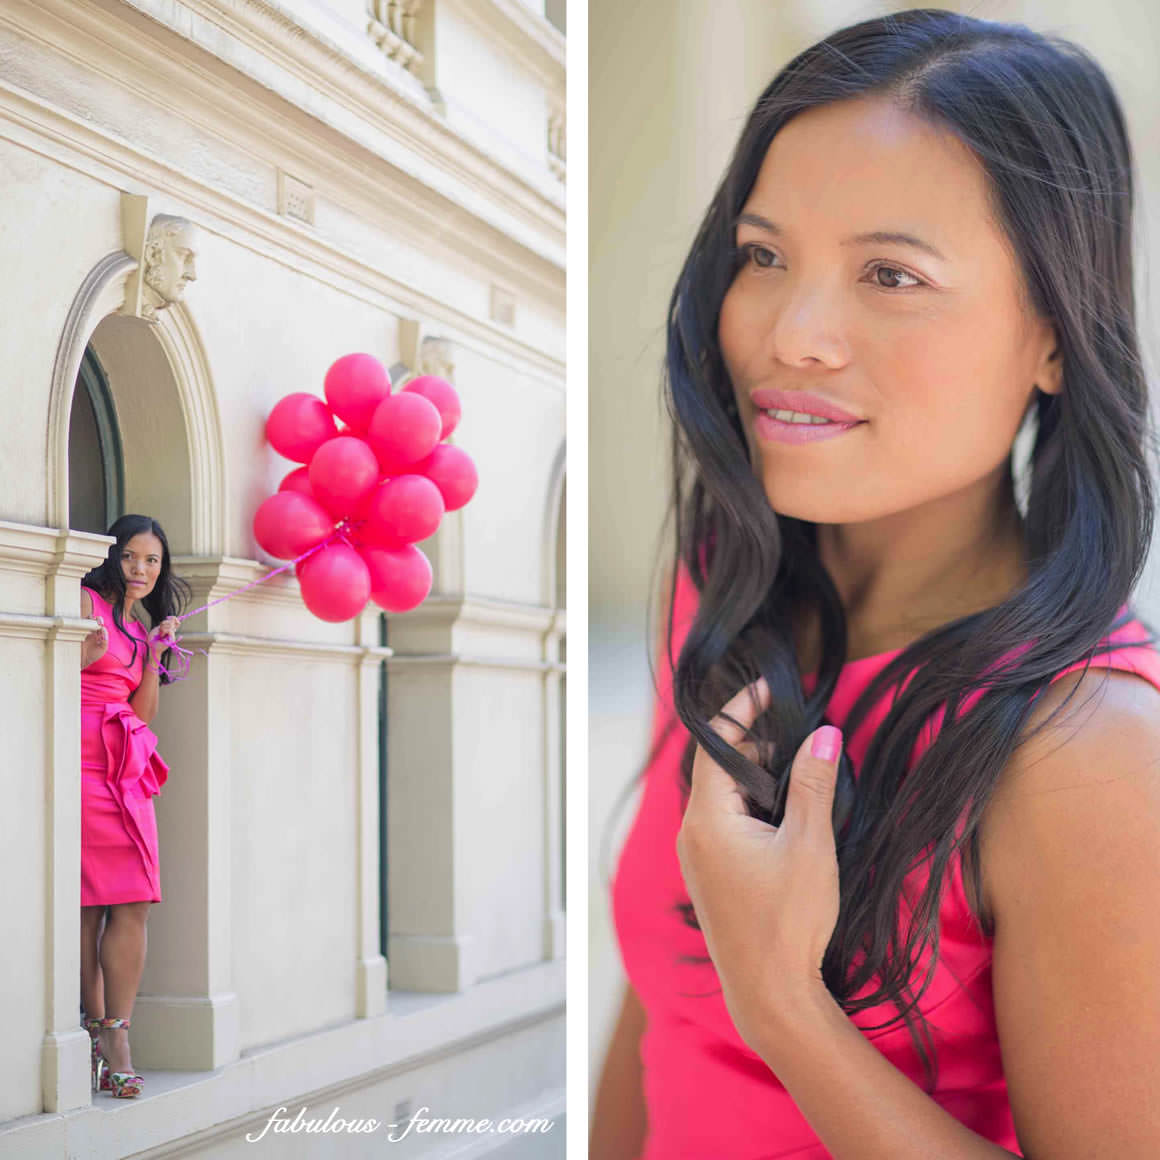 photos of girl with pink balloons